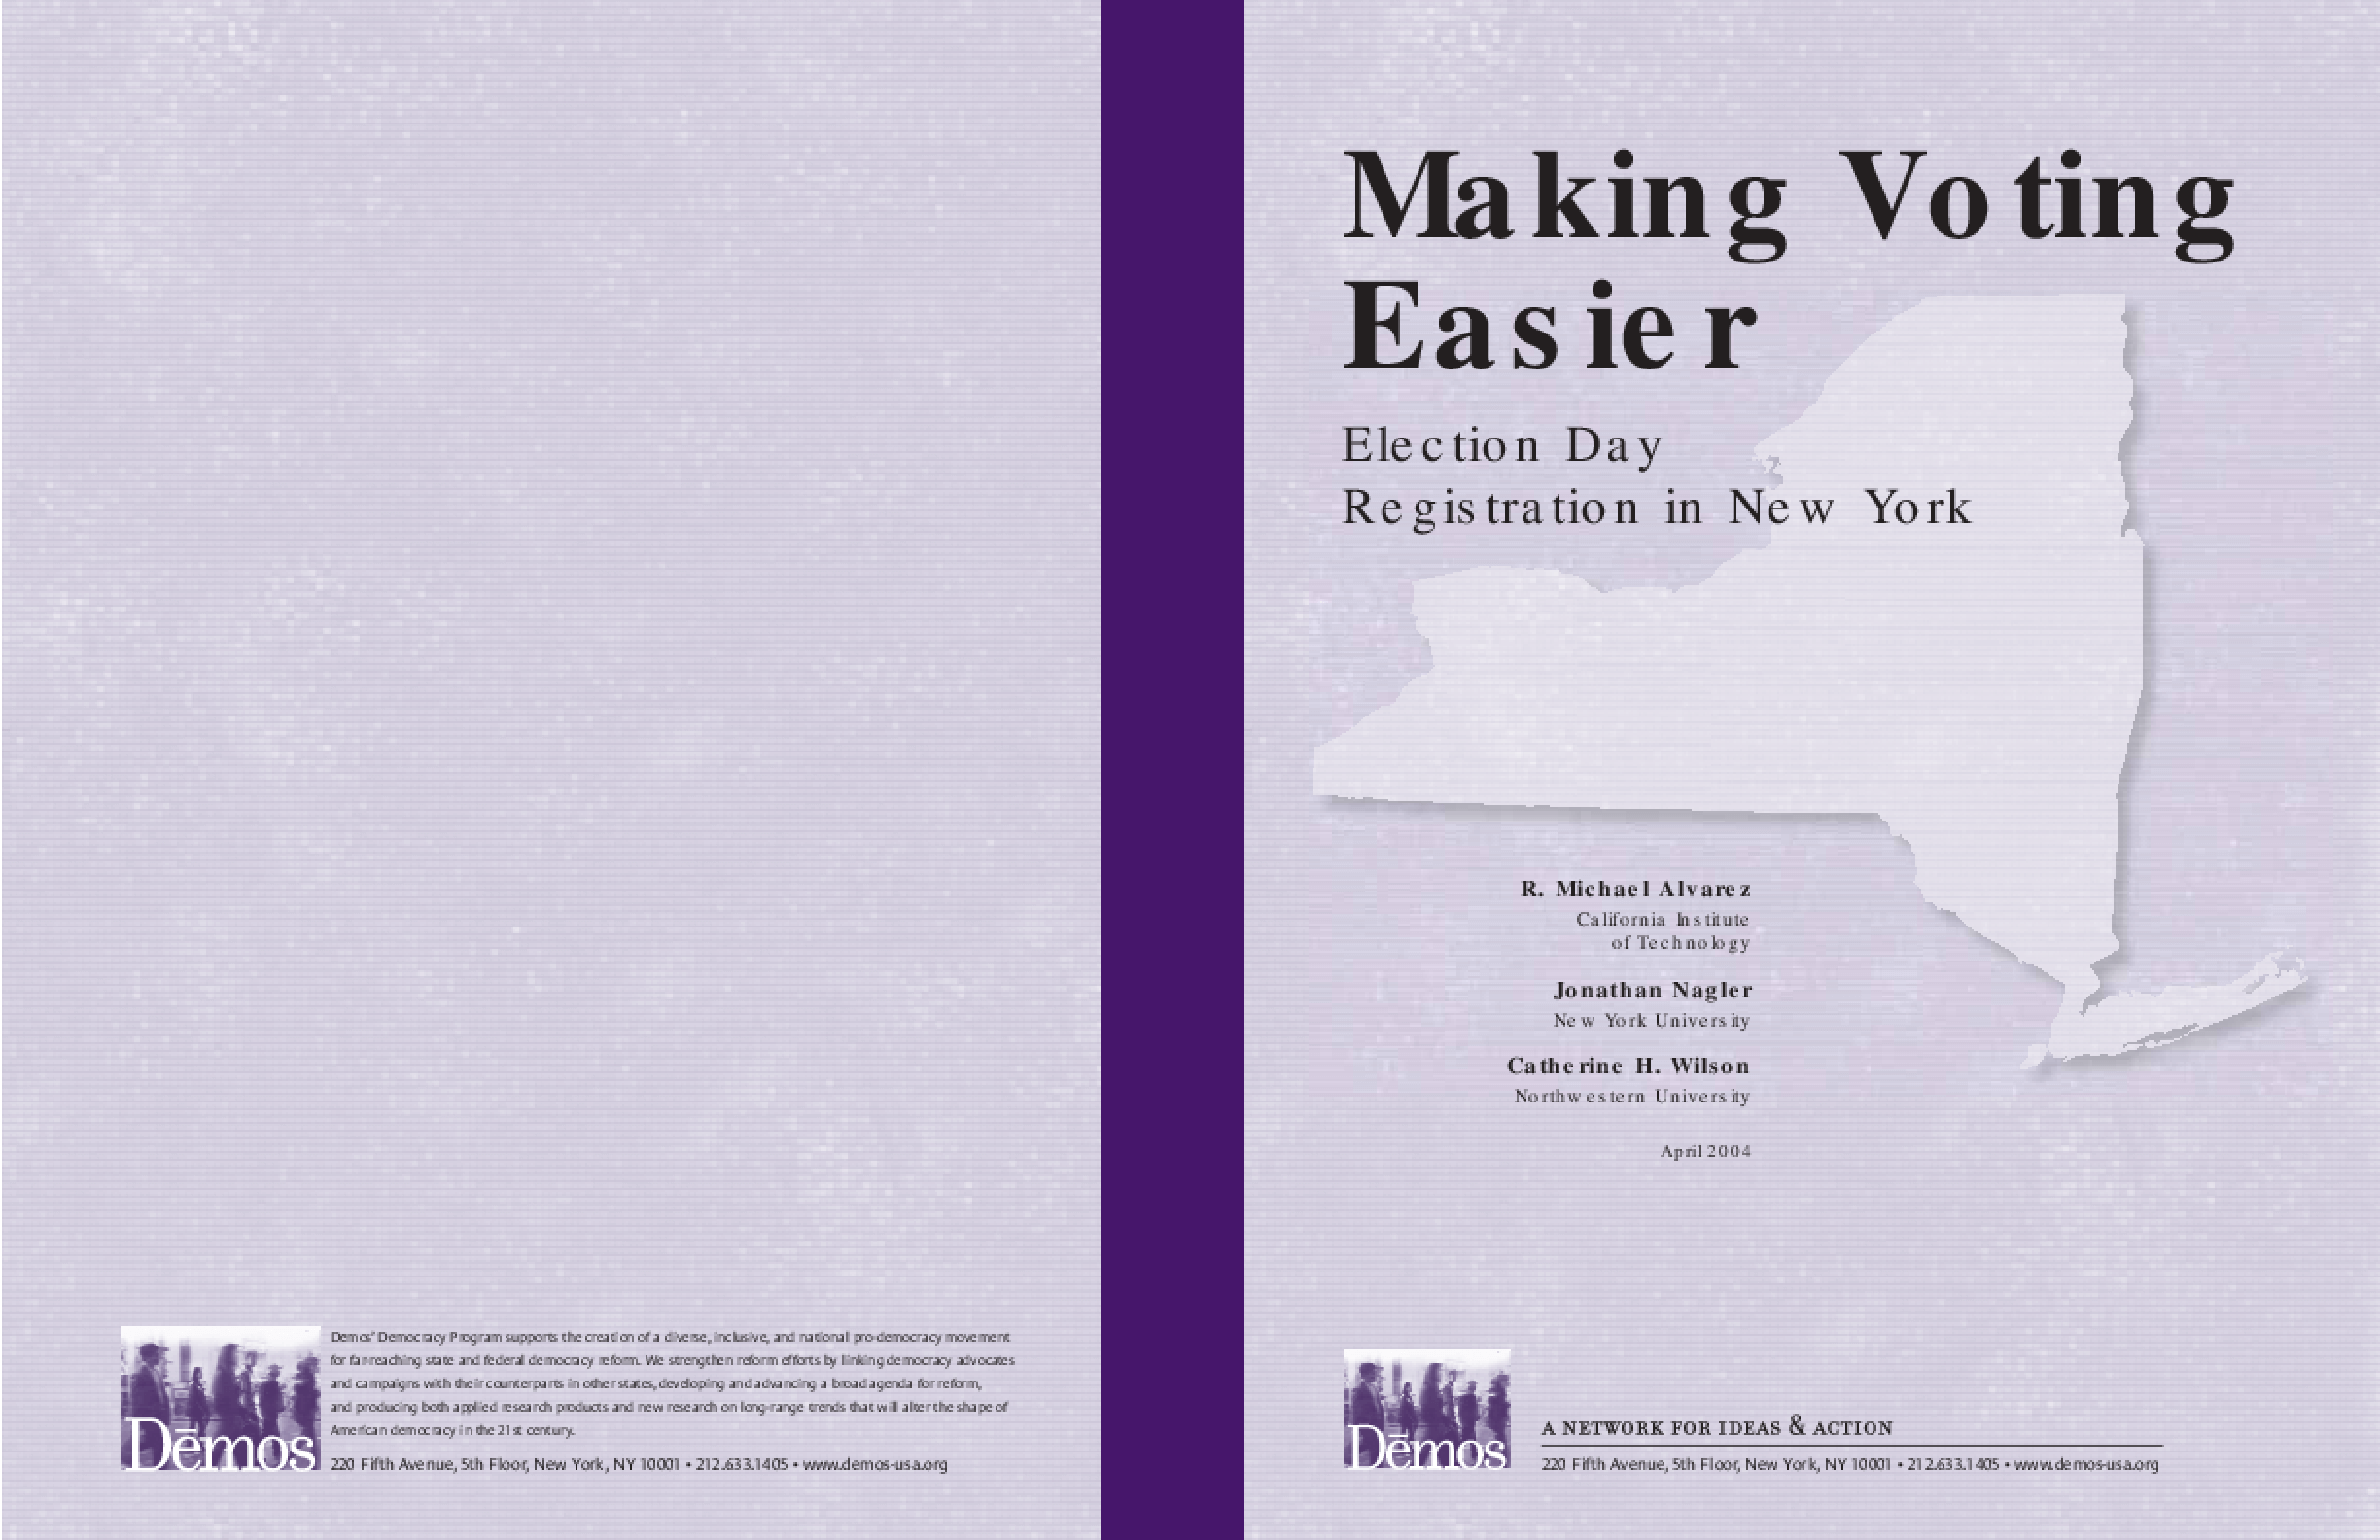 Making Voting Easier: Election Day Registration in New York